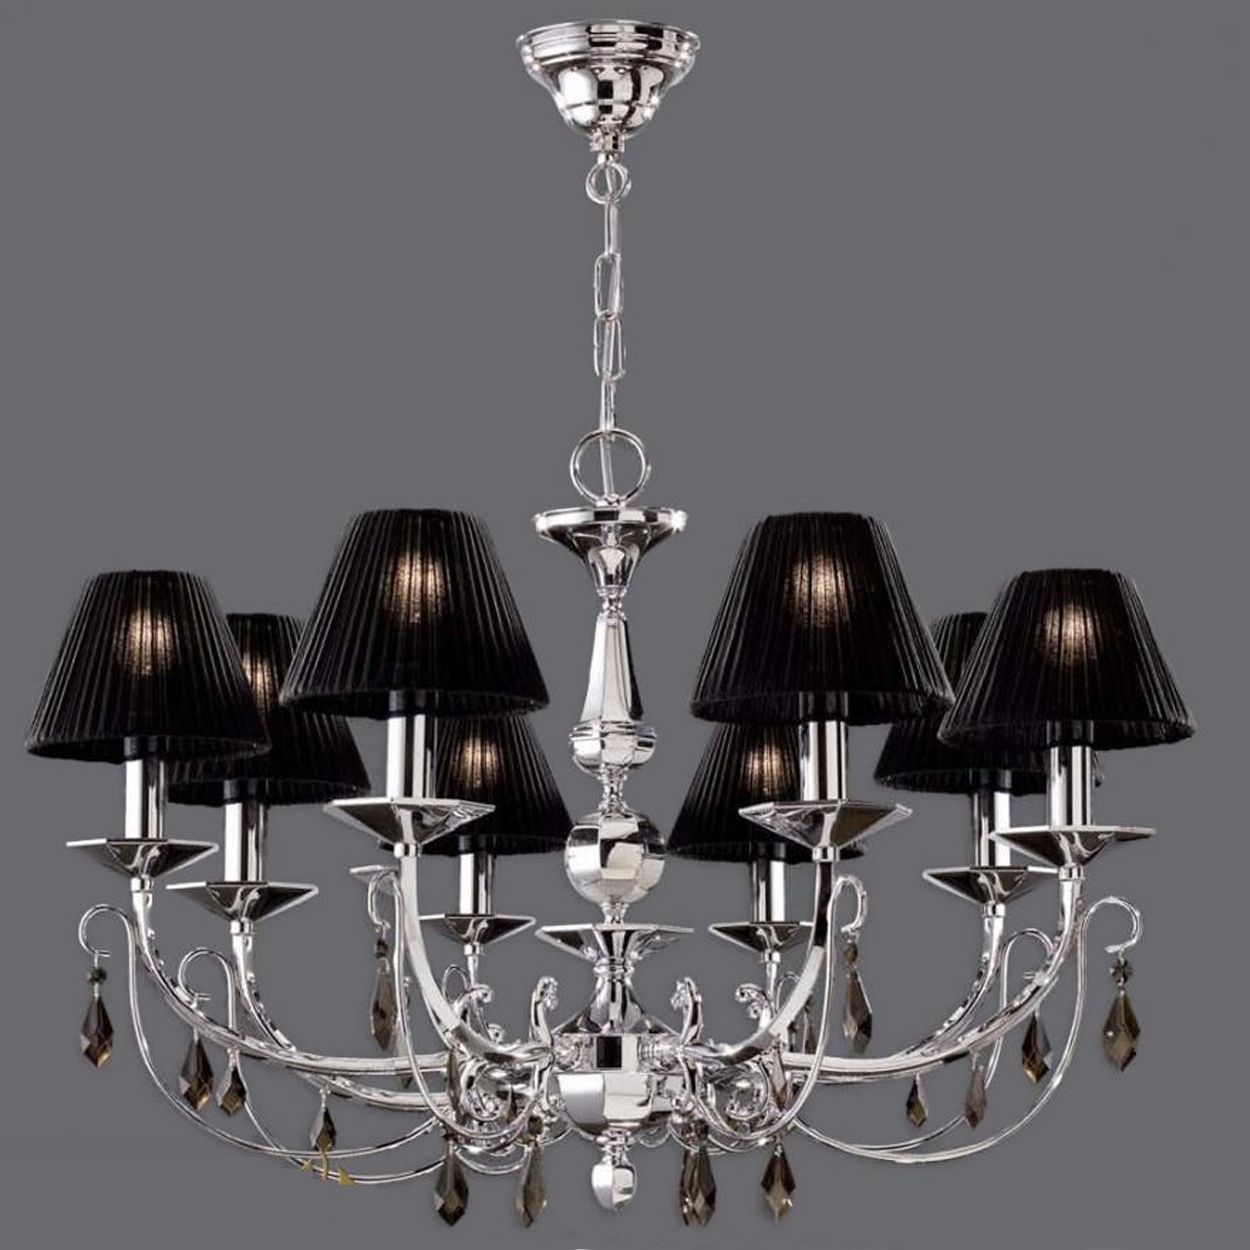 Furniture : Mini Chandelier Lamp Shades 1 Jpg S Pi Pretty 6 Mini Within Preferred Small Chandelier Lamp Shades (View 6 of 20)